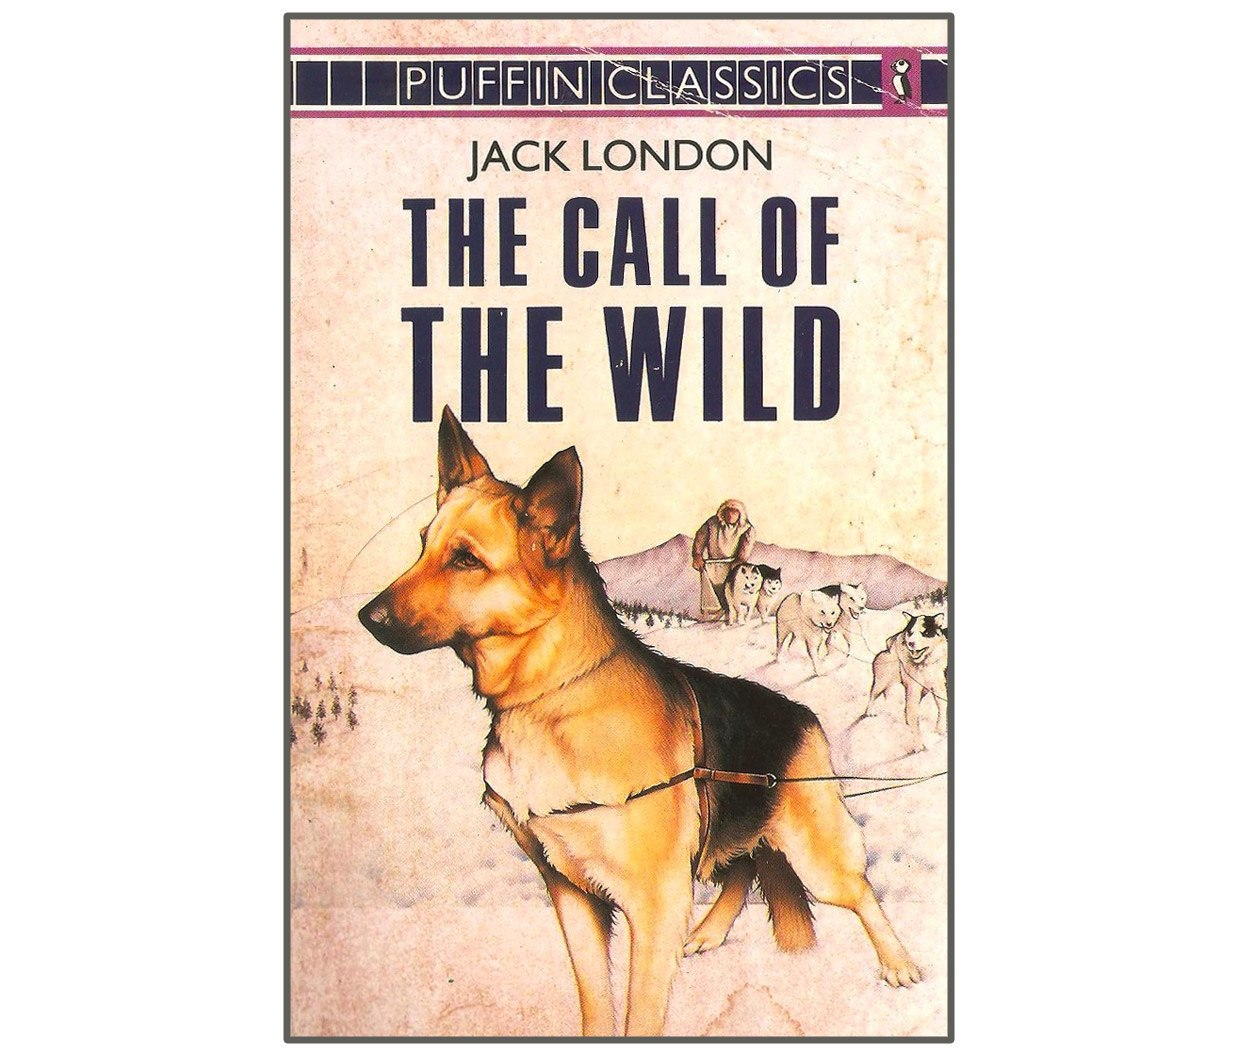 رواية The Call of the Wild للكاتب Jack London